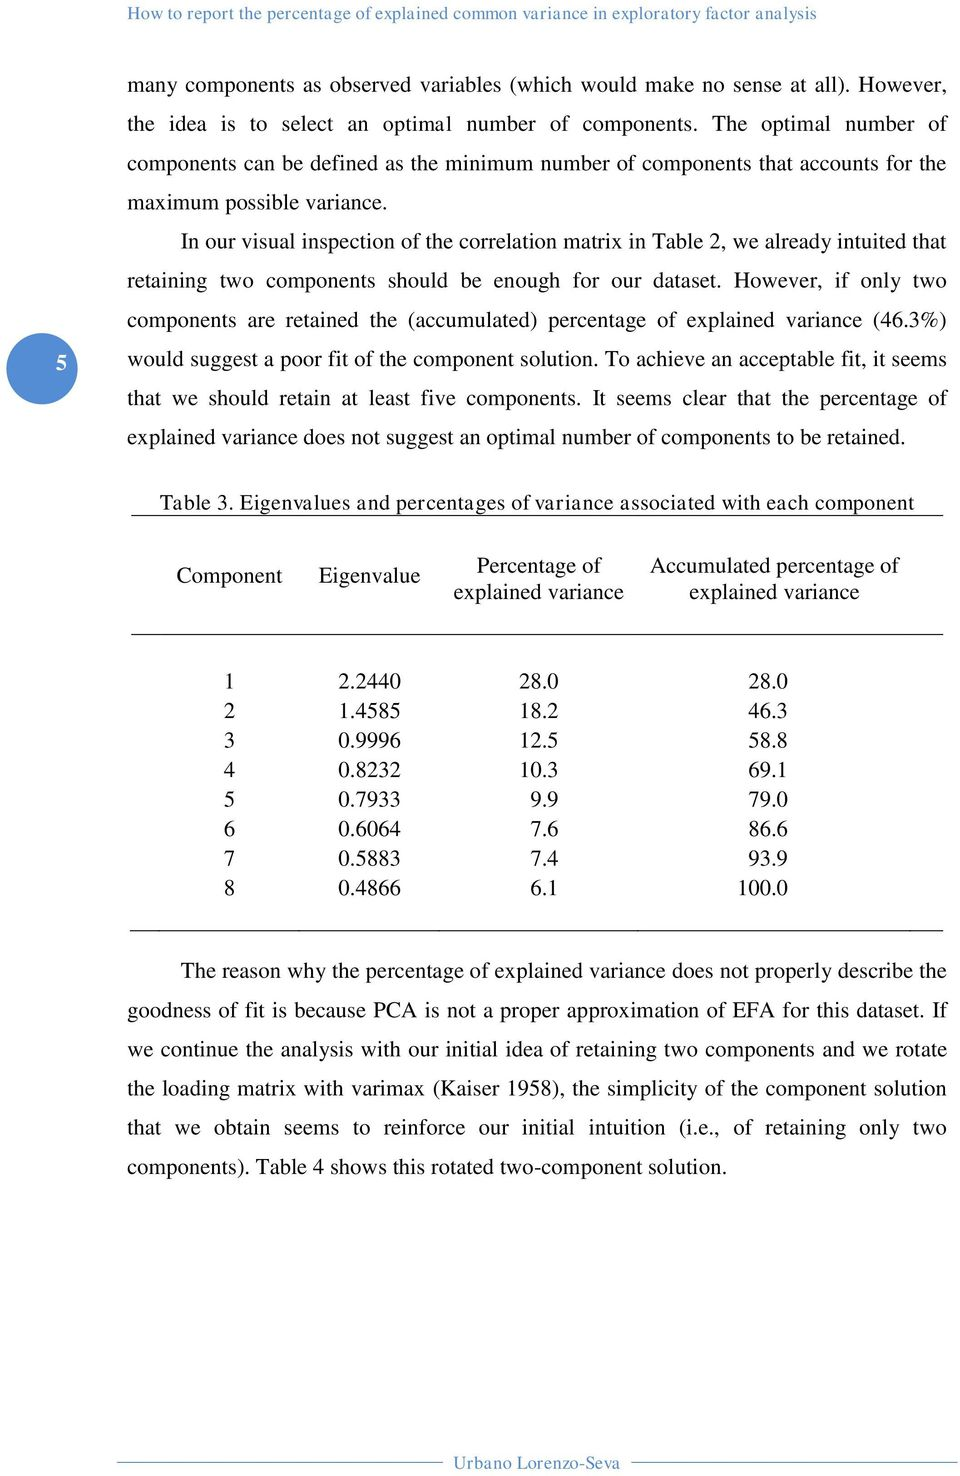 In our visual inspection of the correlation matrix in Table 2, we already intuited that retaining two components should be enough for our dataset.